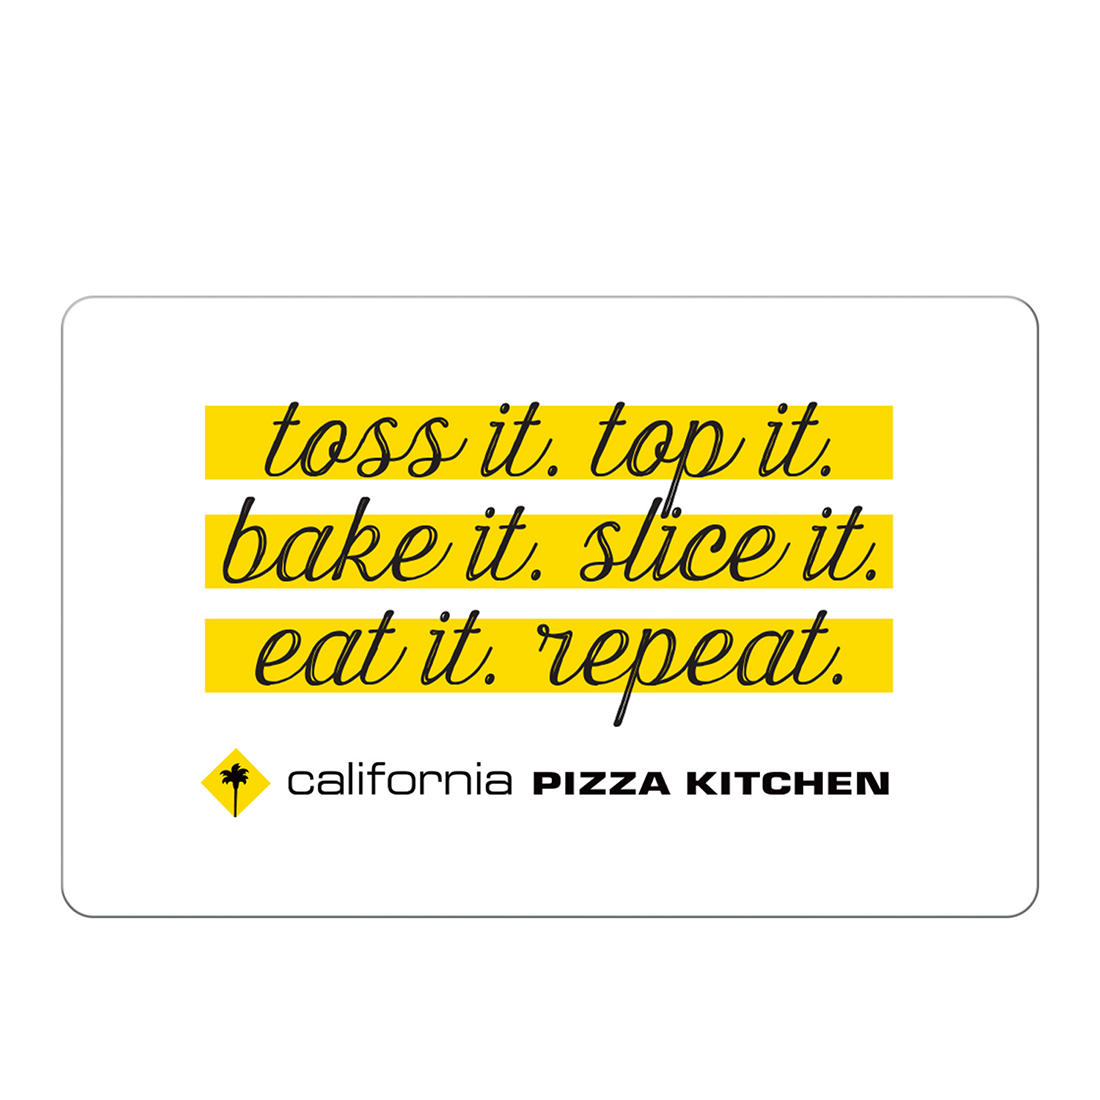 Swell California Pizza Kitchen 25 Gift Card Home Interior And Landscaping Oversignezvosmurscom